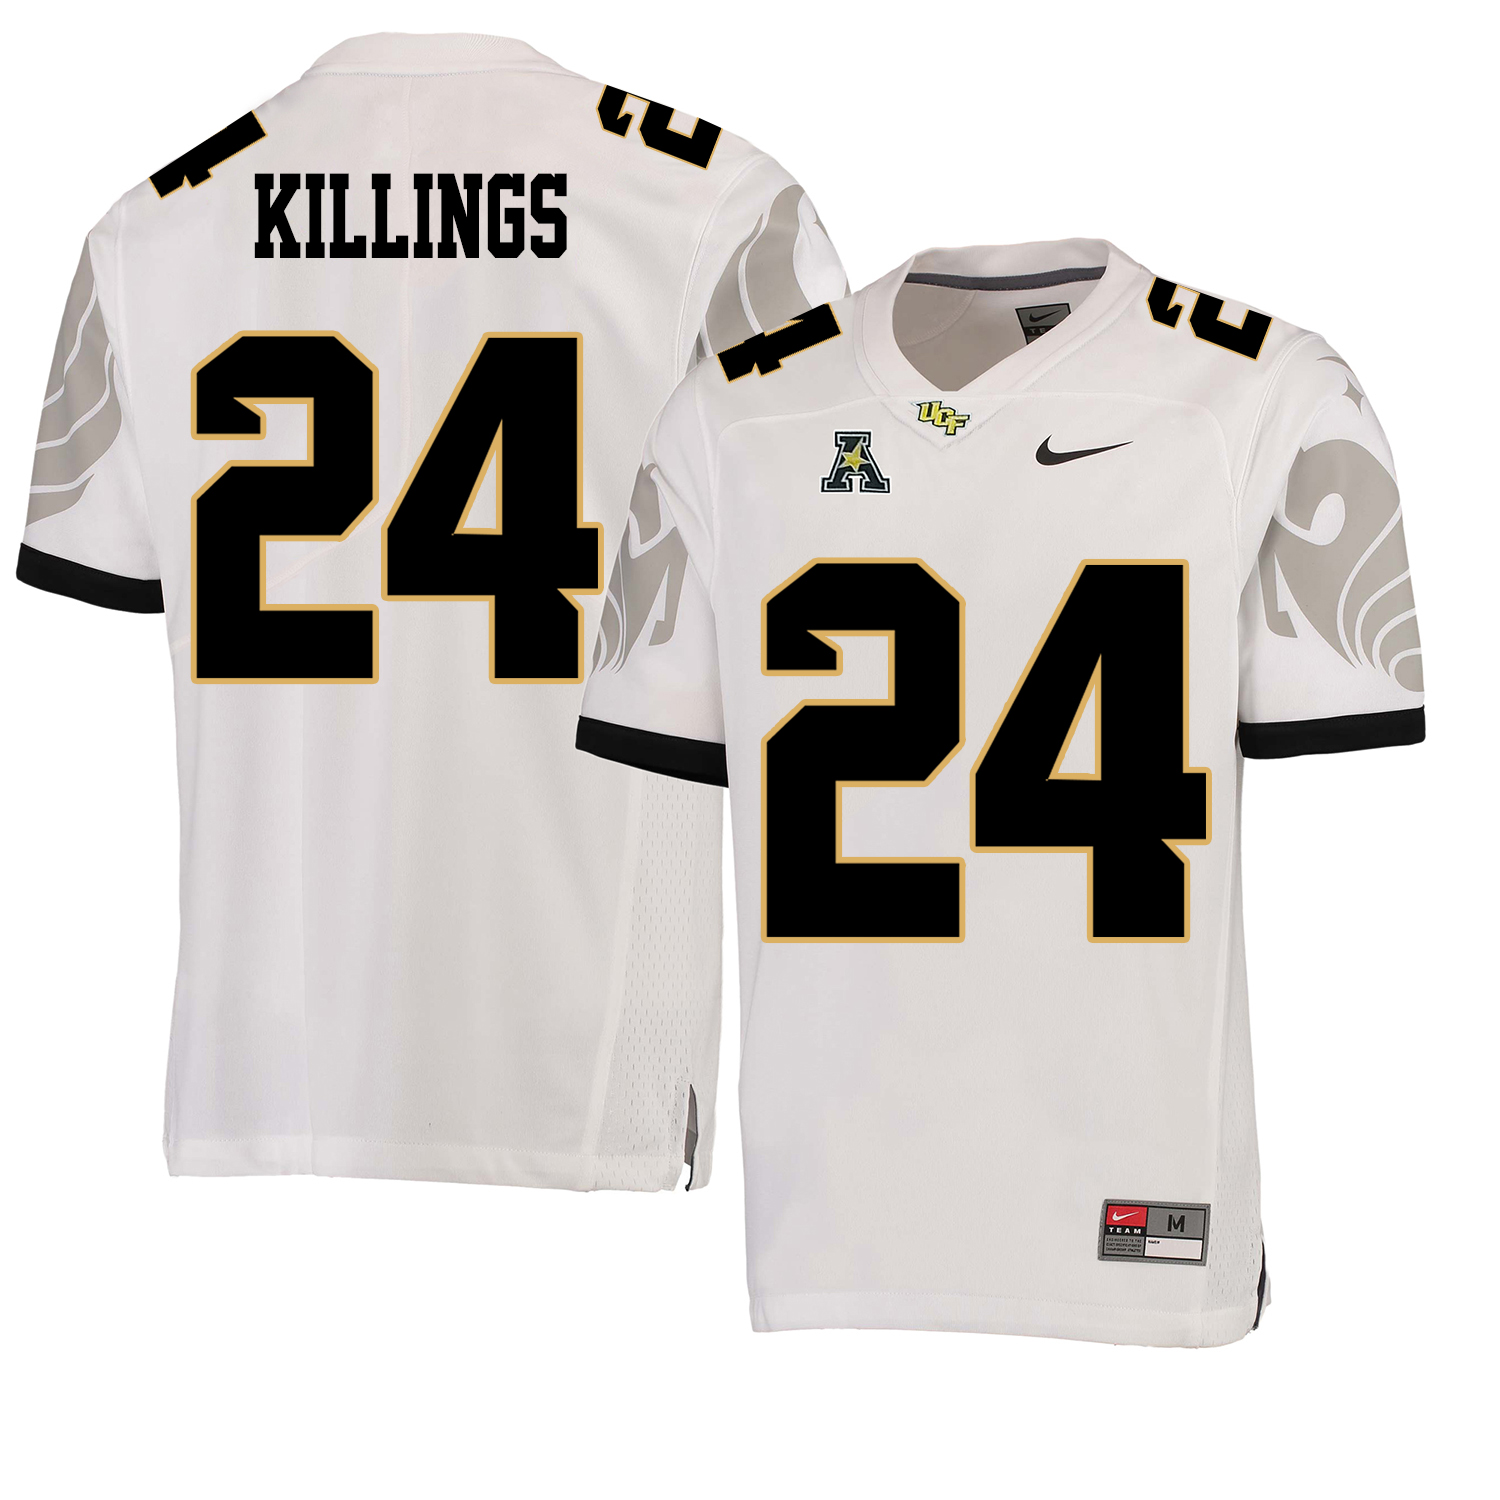 UCF Knights 24 D.J. Killings White College Football Jersey